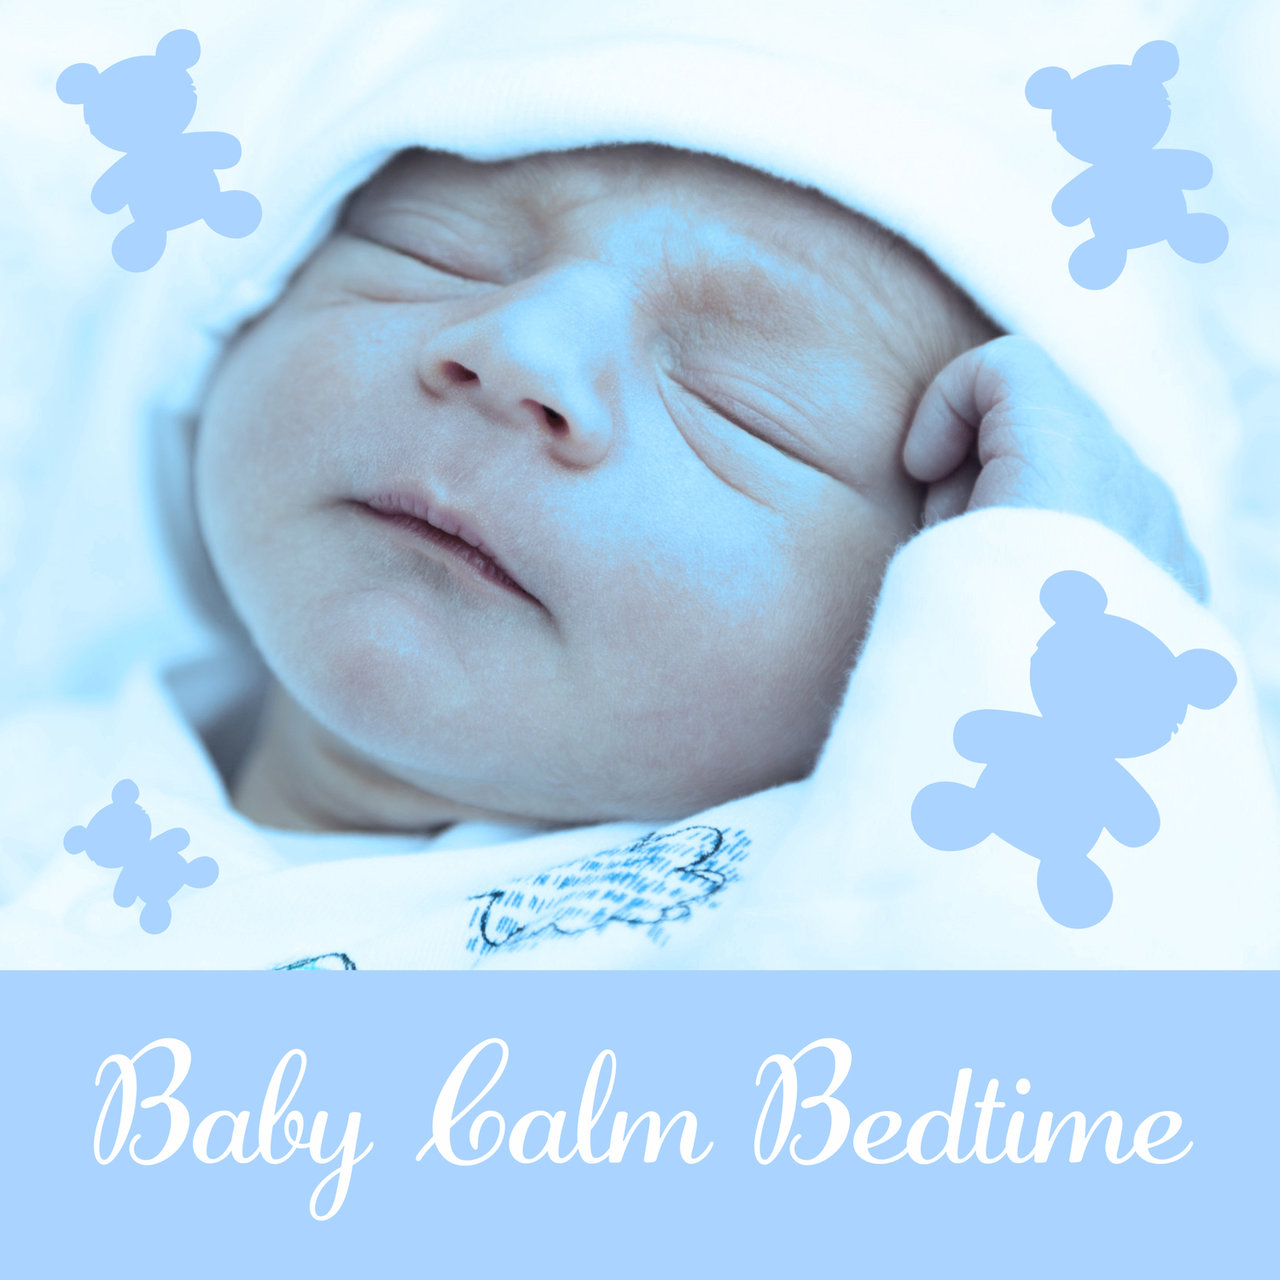 Newborn Bedtime Tidal Listen To Baby Calm Bedtime Background Lullaby Help To